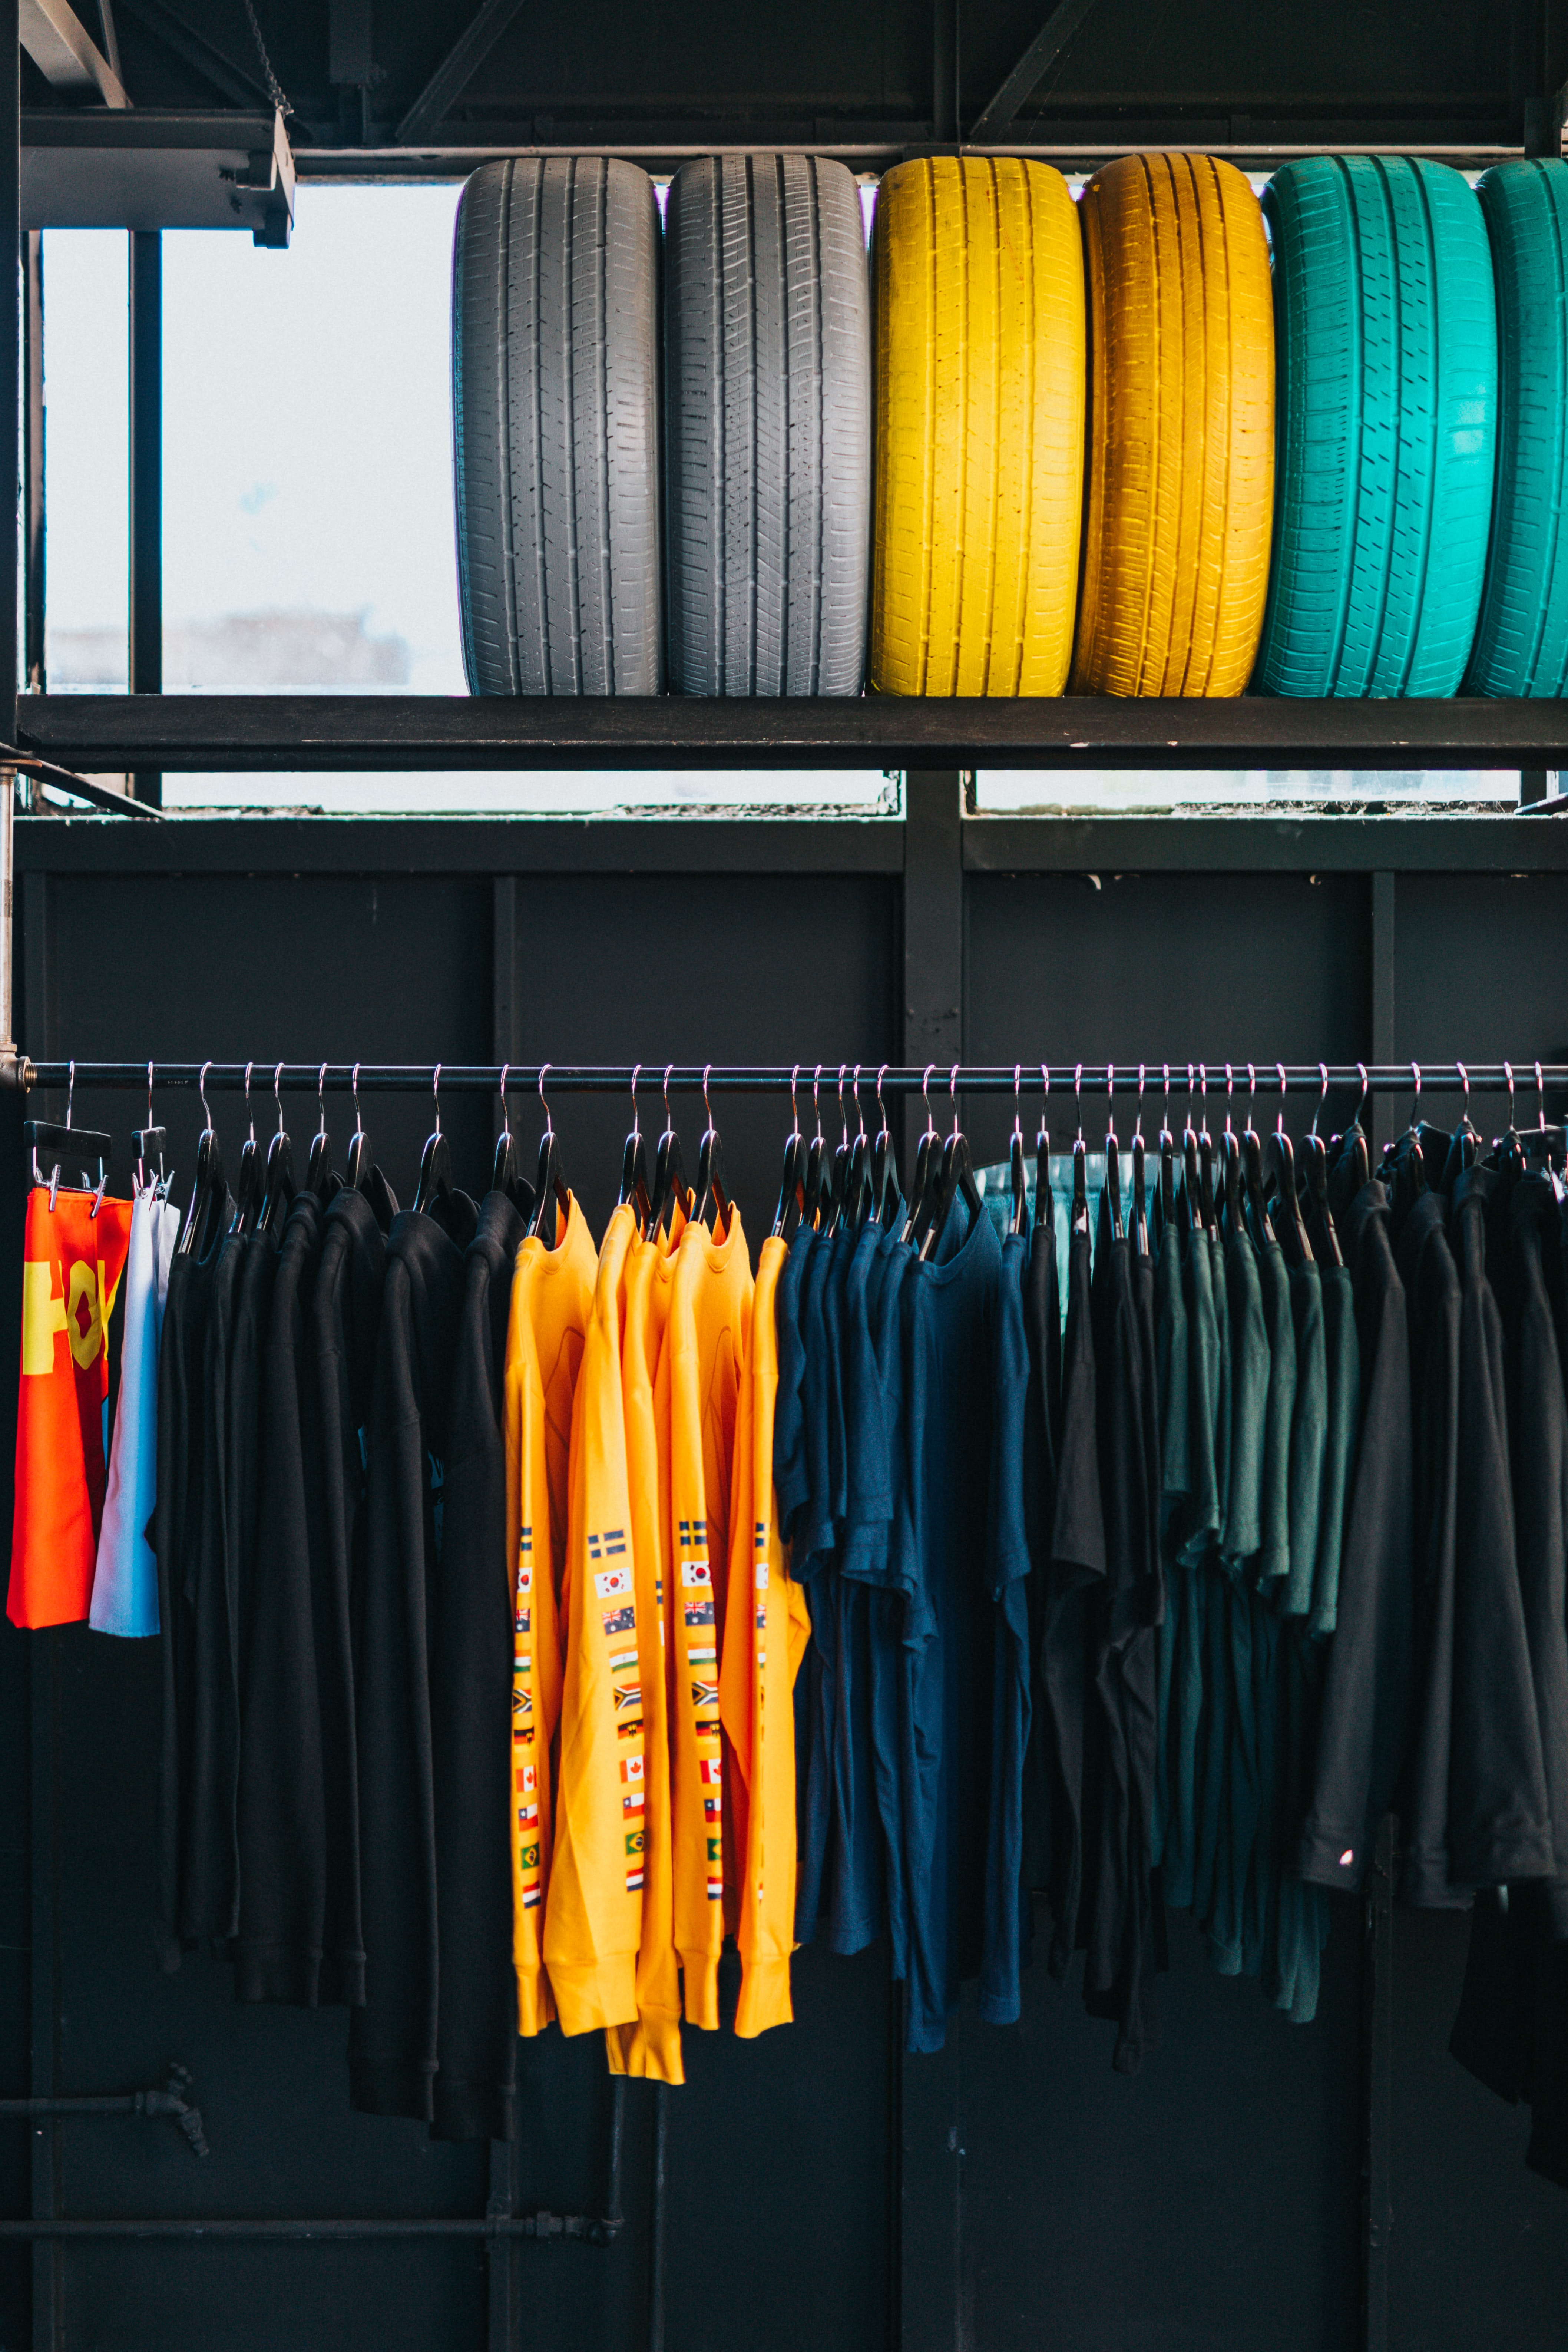 assorted-color clothes hanged on rack below six assorted-color ties